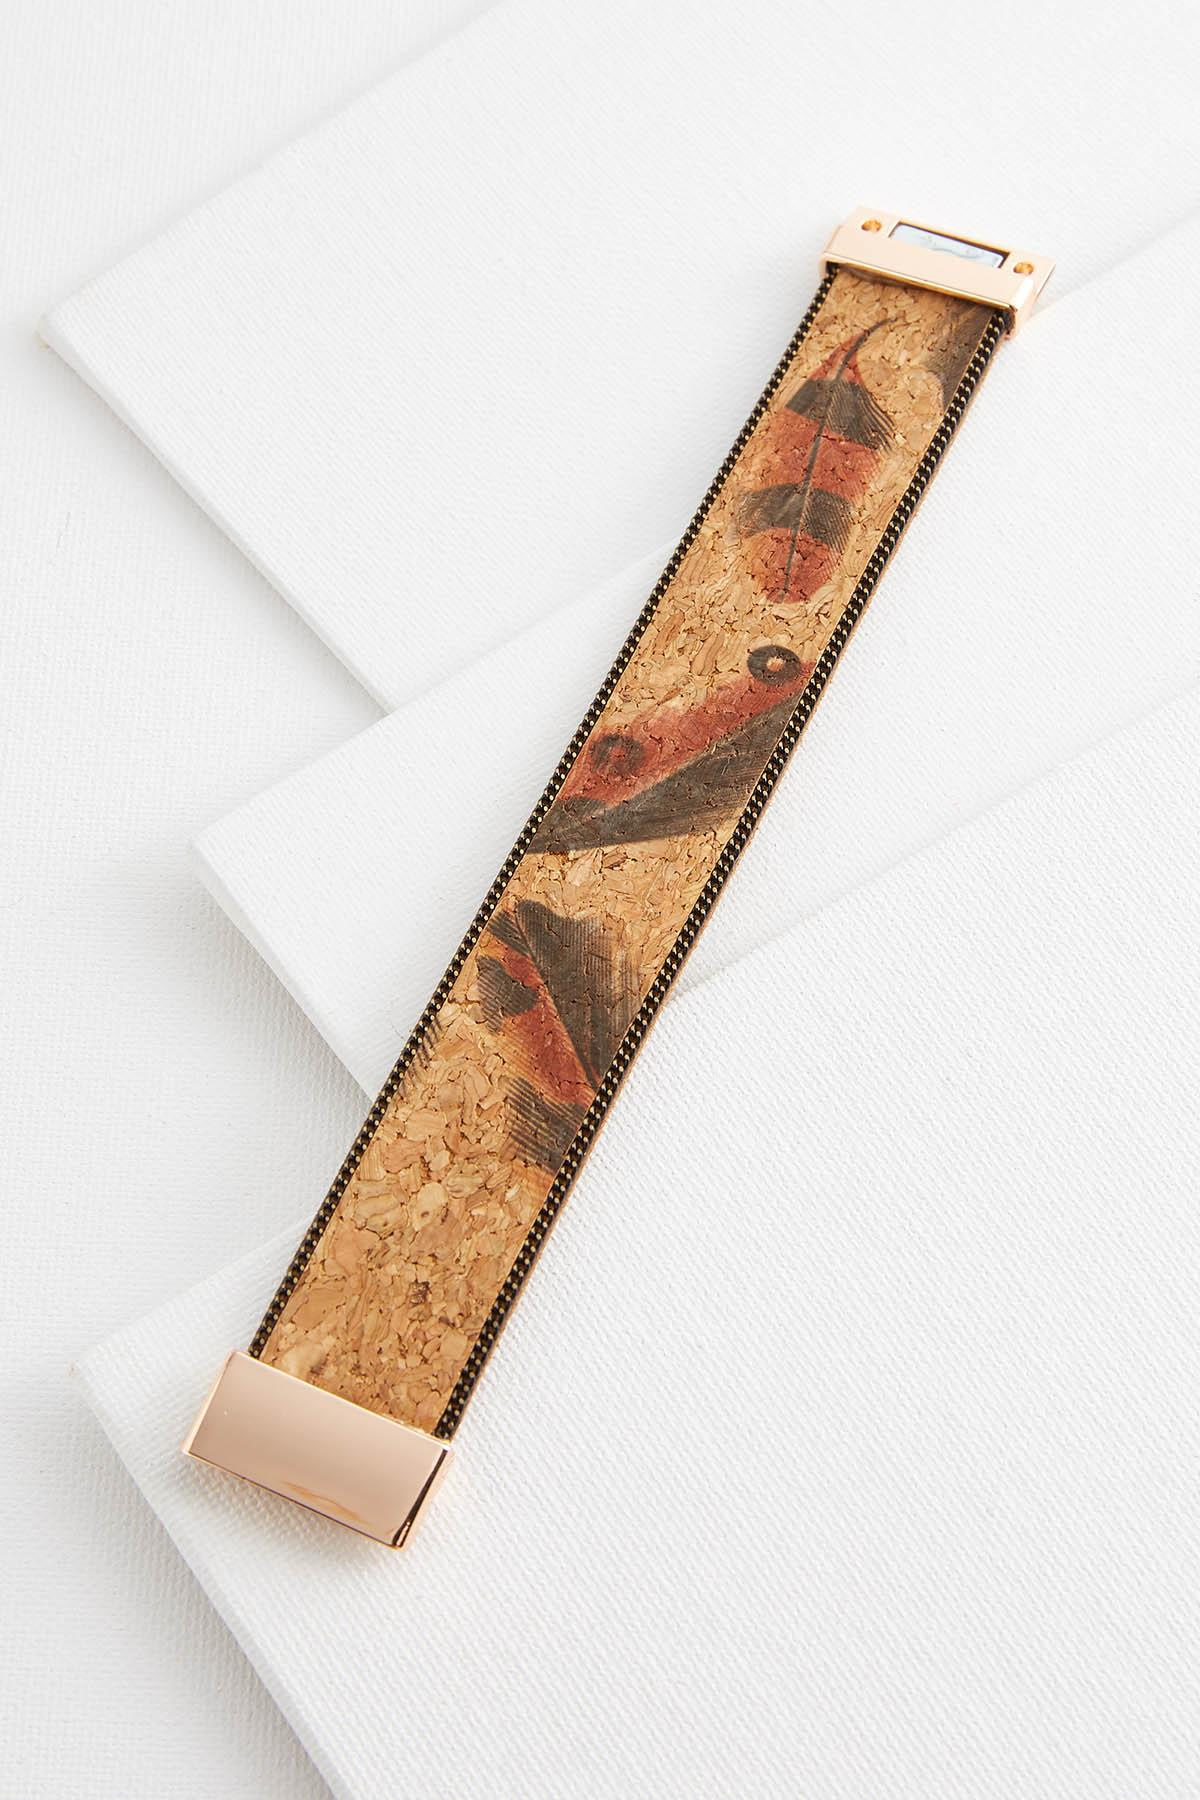 Feather Cork Bracelet